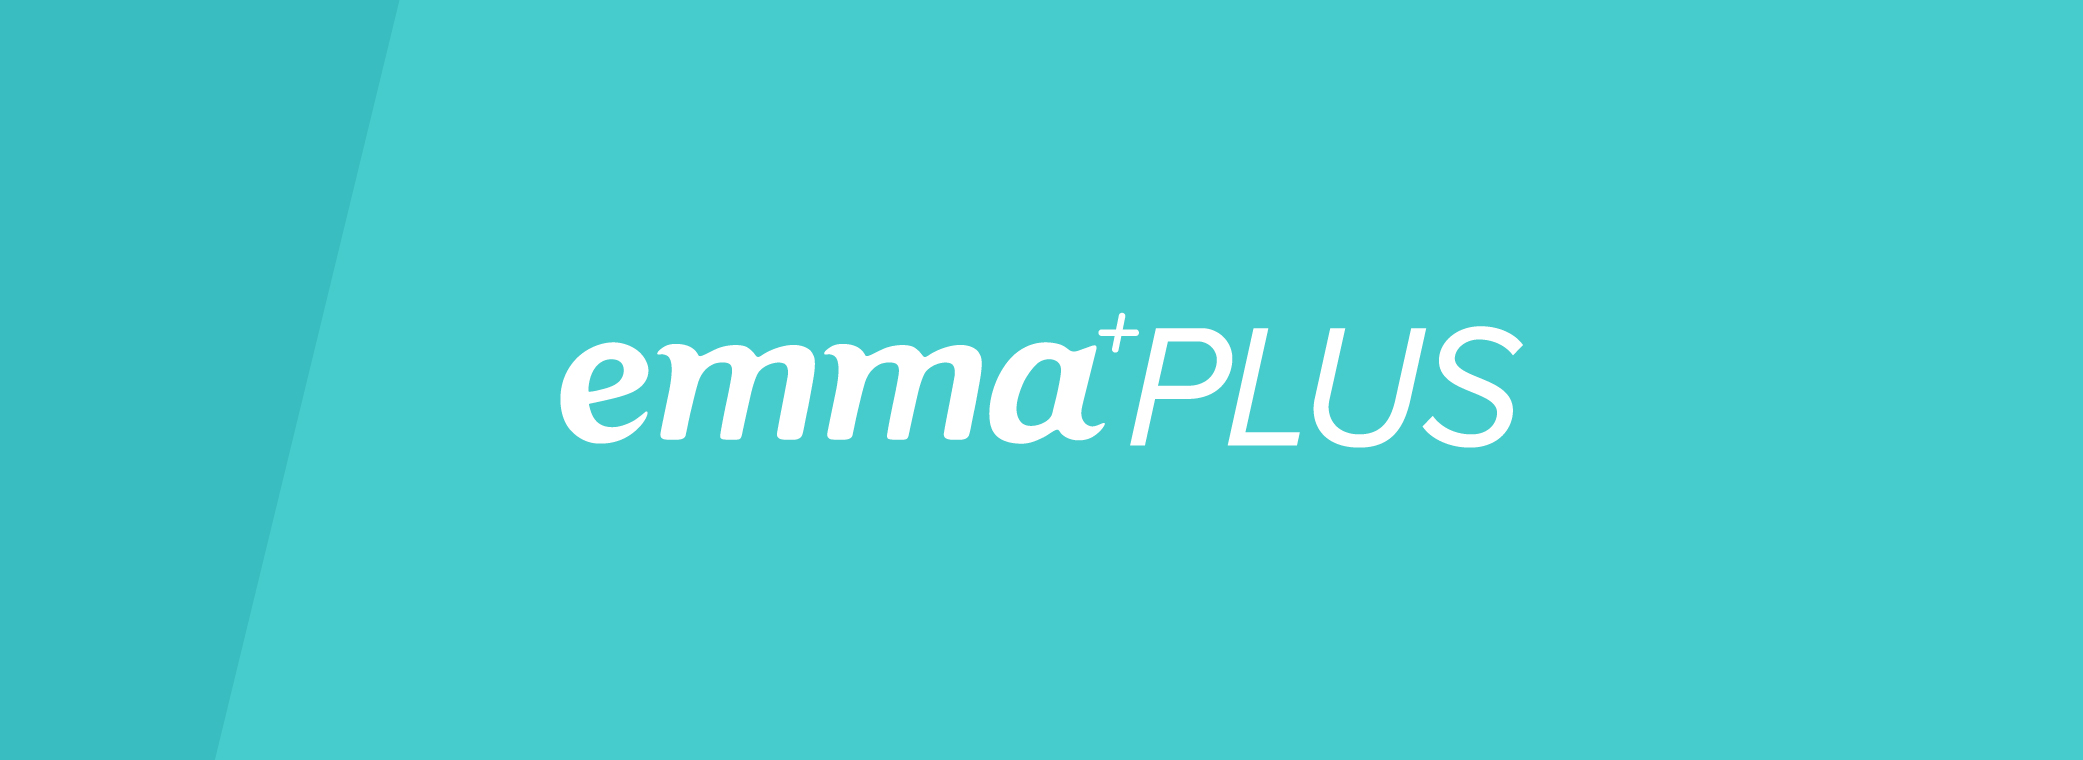 Introducing-Emma-Plus-the-platform-you've-been-waiting-for